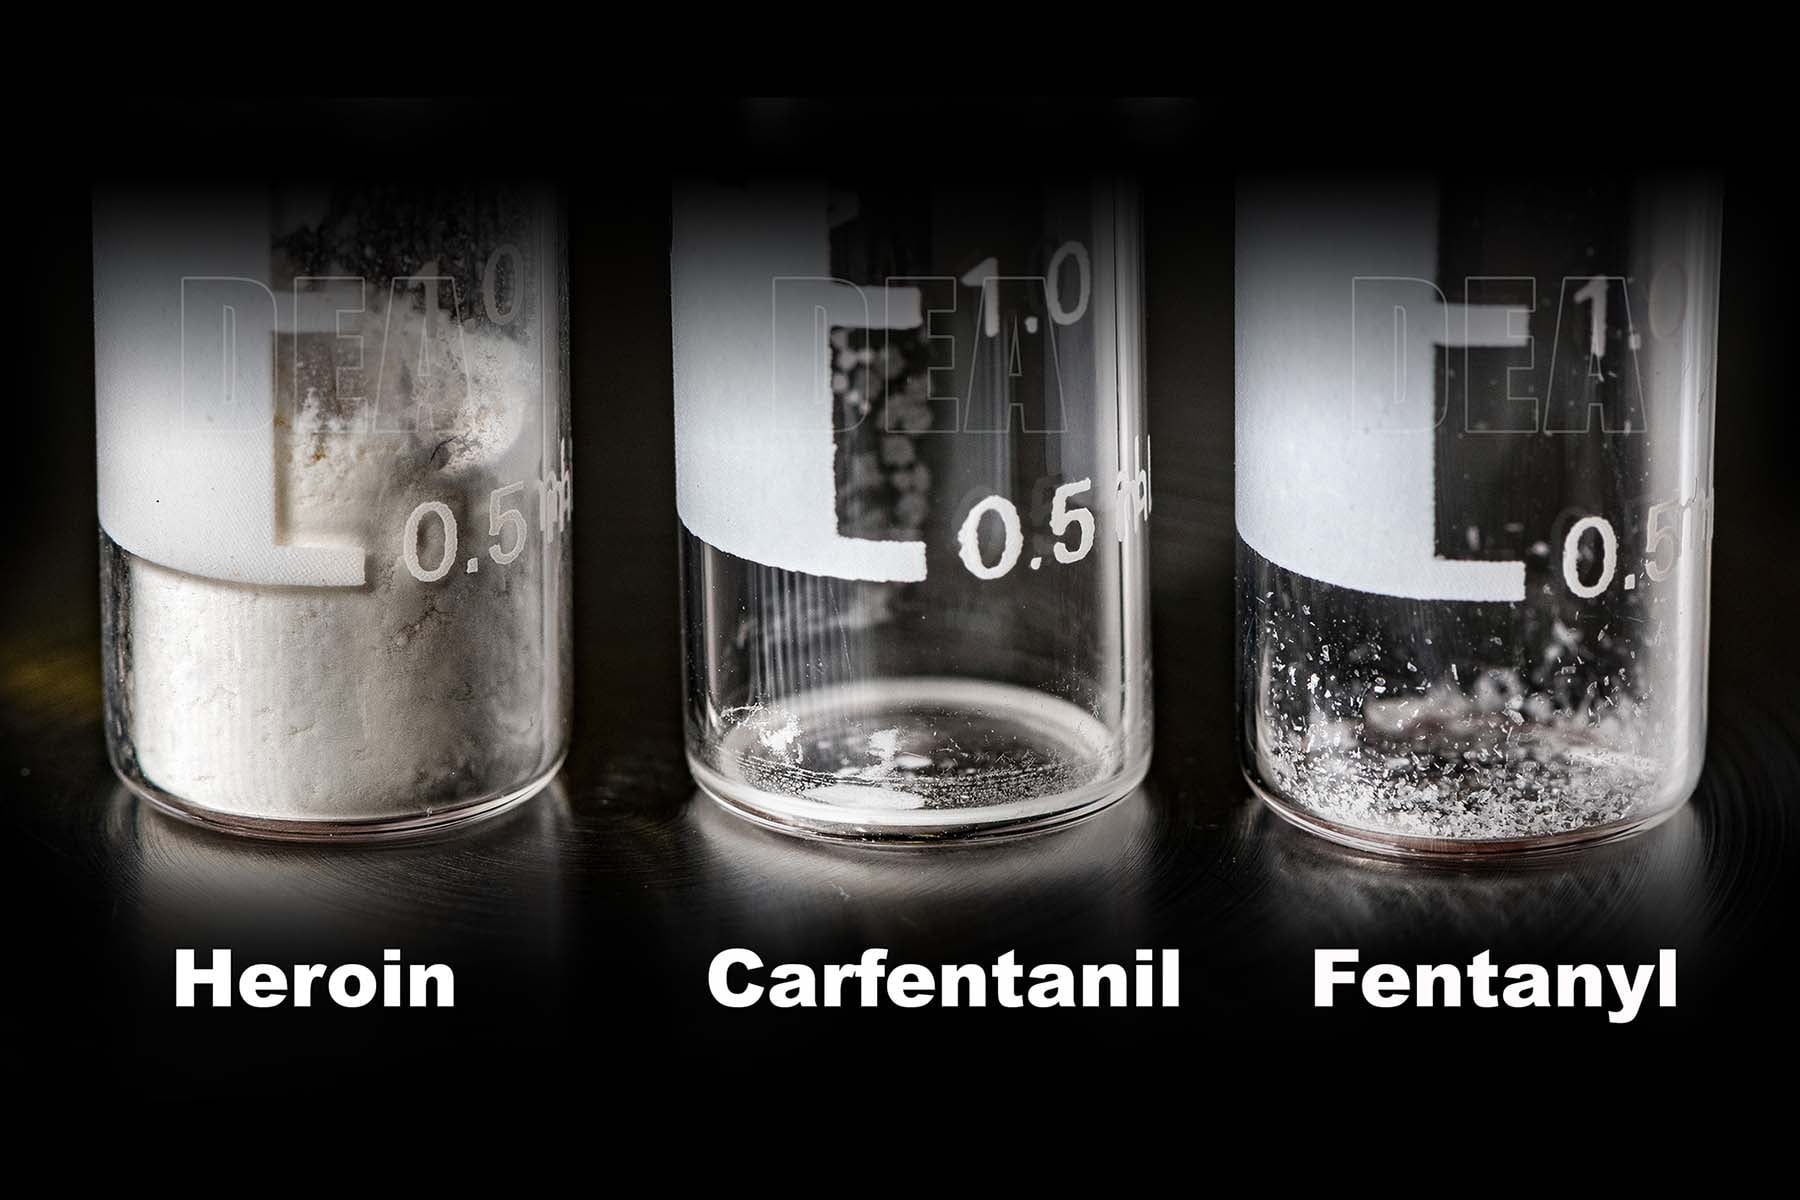 carfentanil, fentanyl and heroin